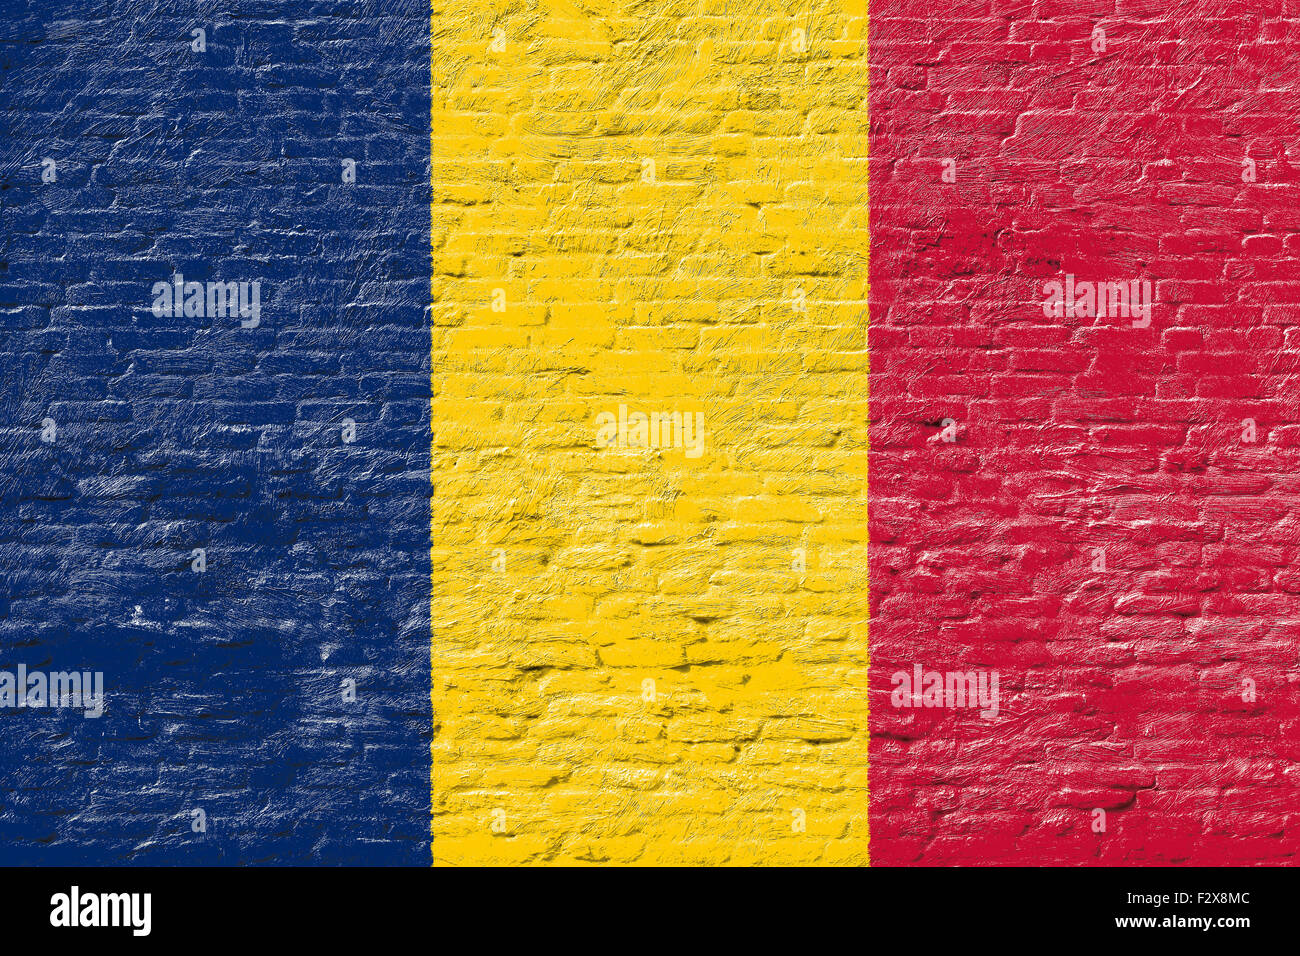 Chad - National flag on Brick wall - Stock Image